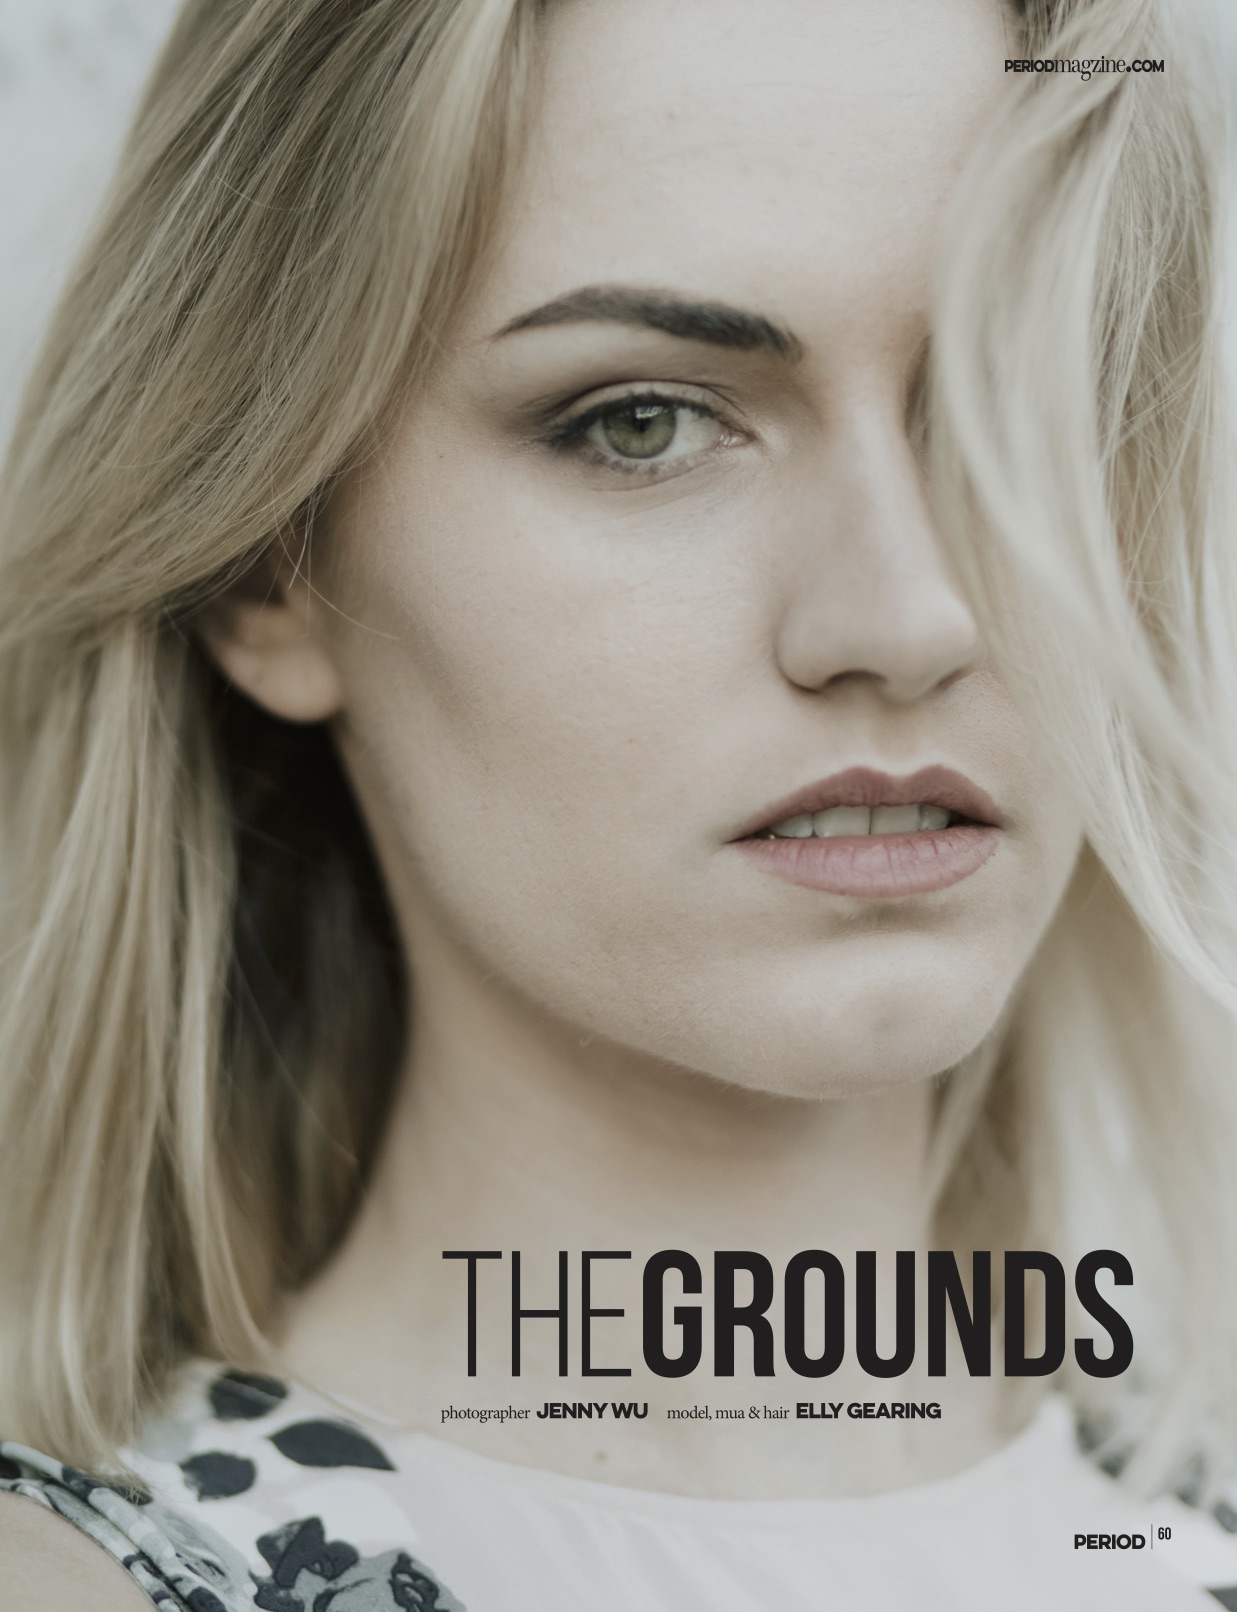 The Grounds Editorial Published in Period Magazine shot by Jenny Wu in Alexandria